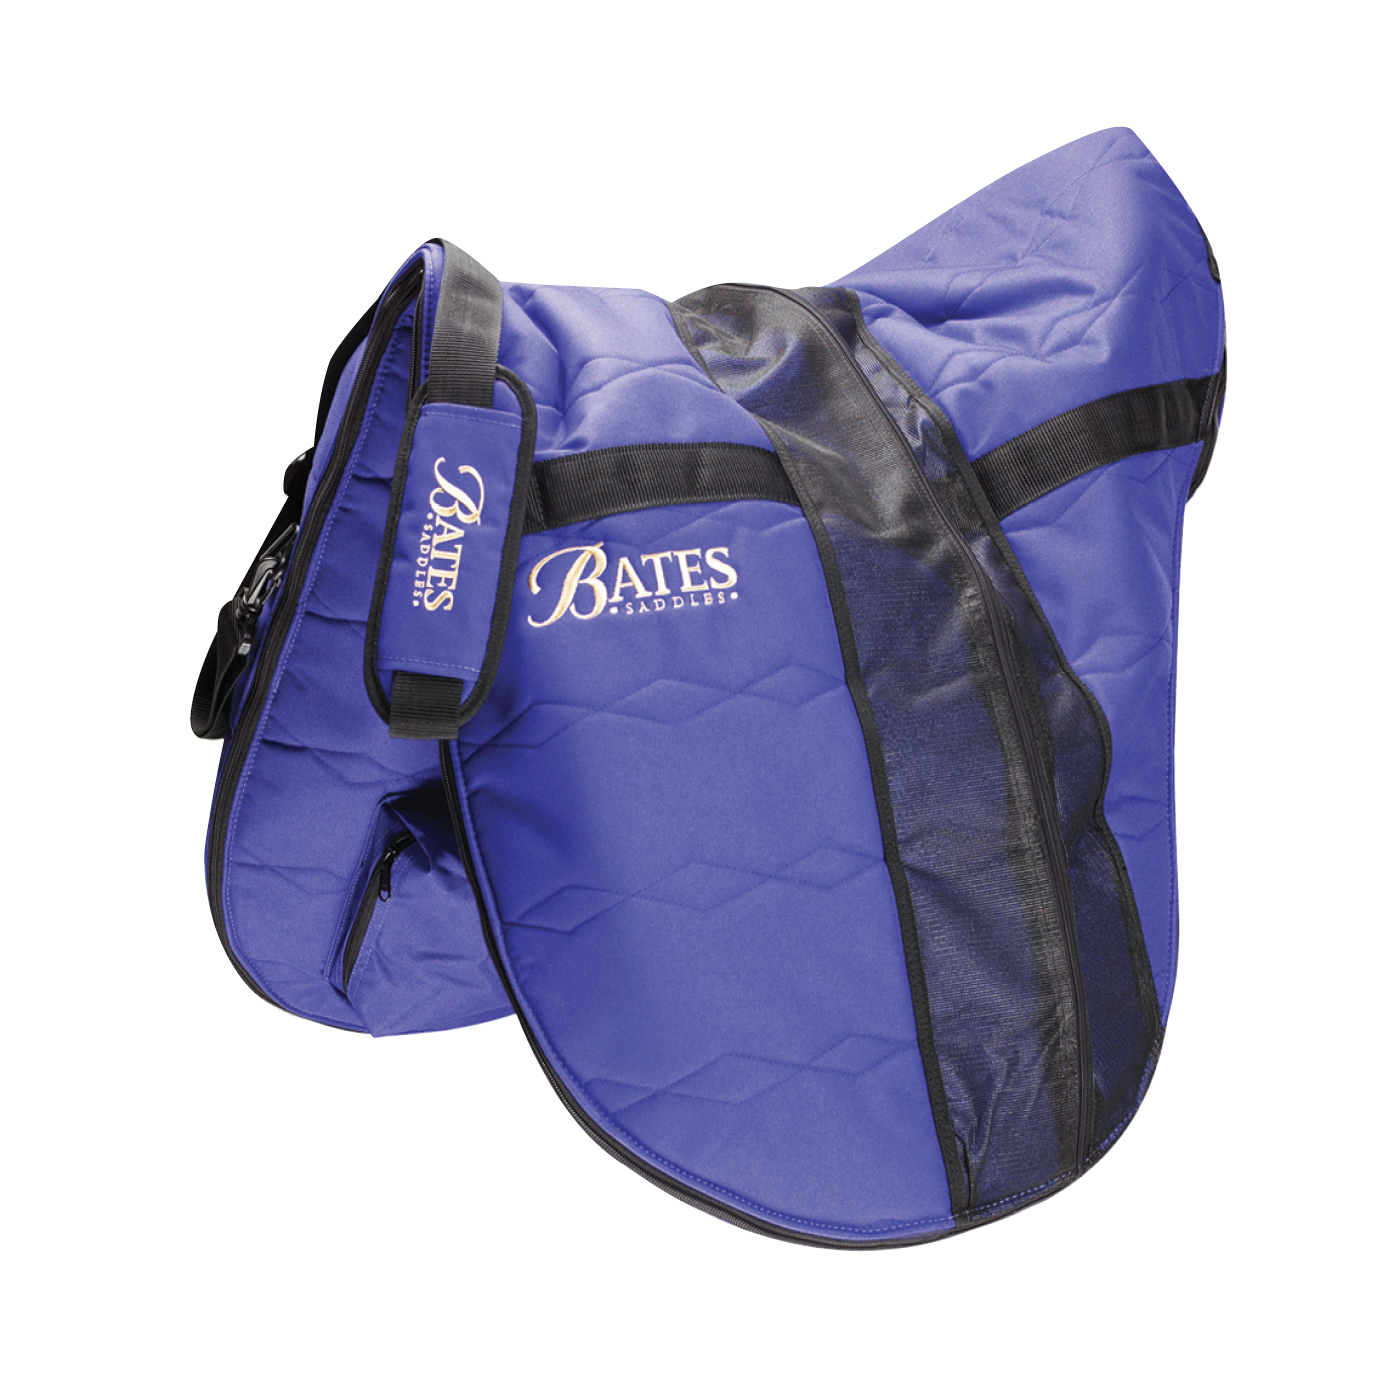 Bates Saddle Bag - 617:32476852650080